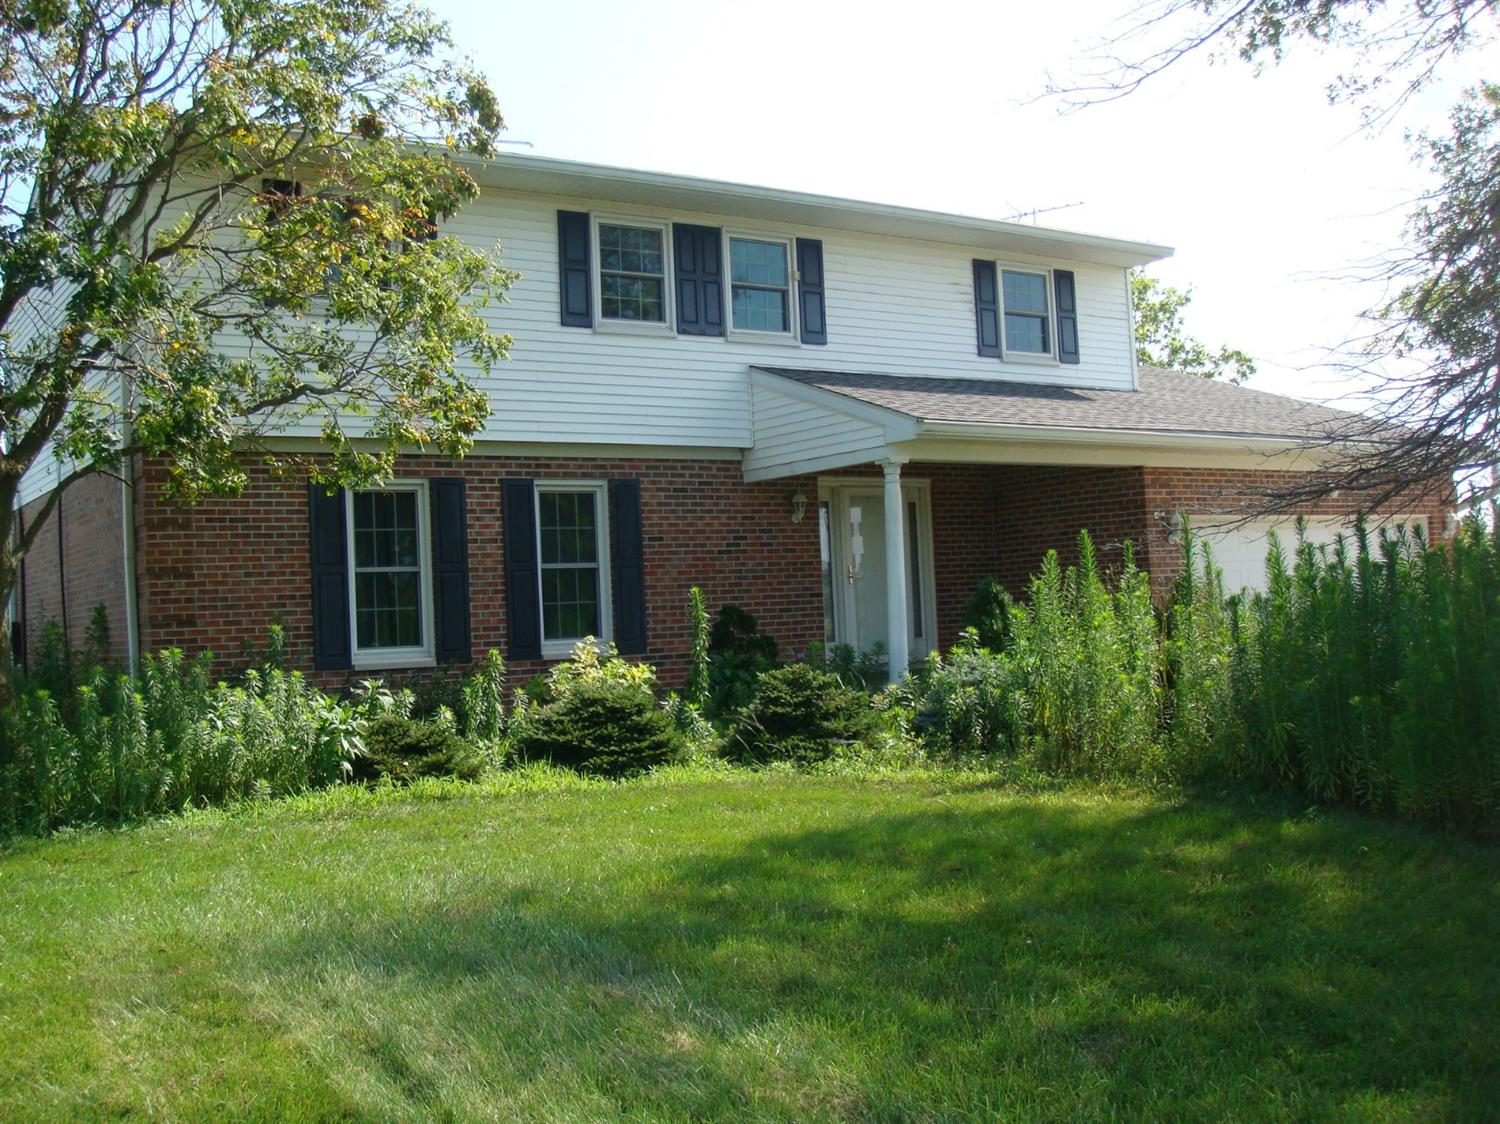 Photo 2 for 7007 Peoria Reily Rd Reily Twp., OH 45056